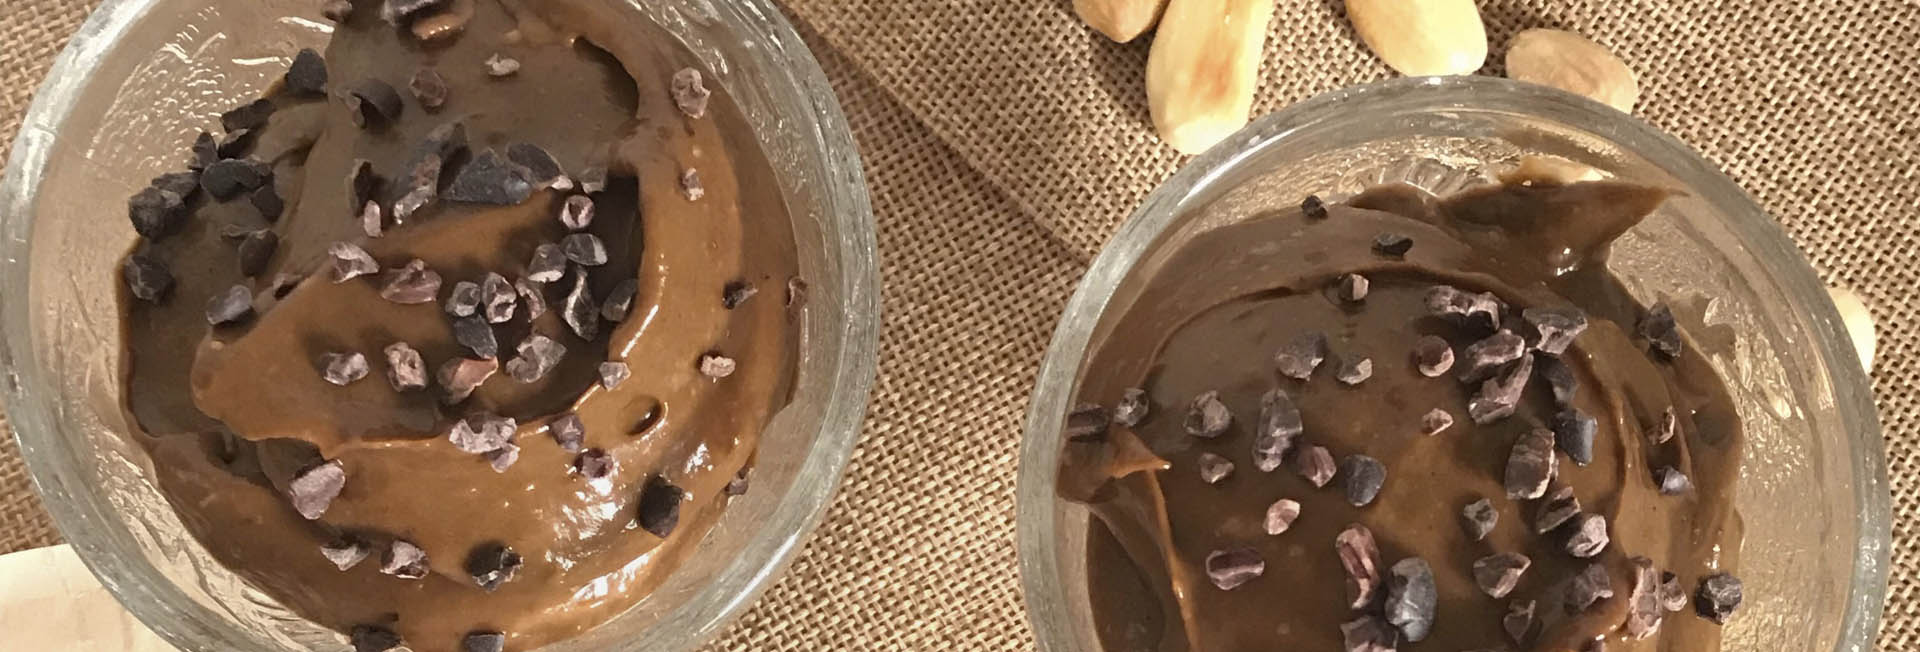 Mousse chocolate vegano